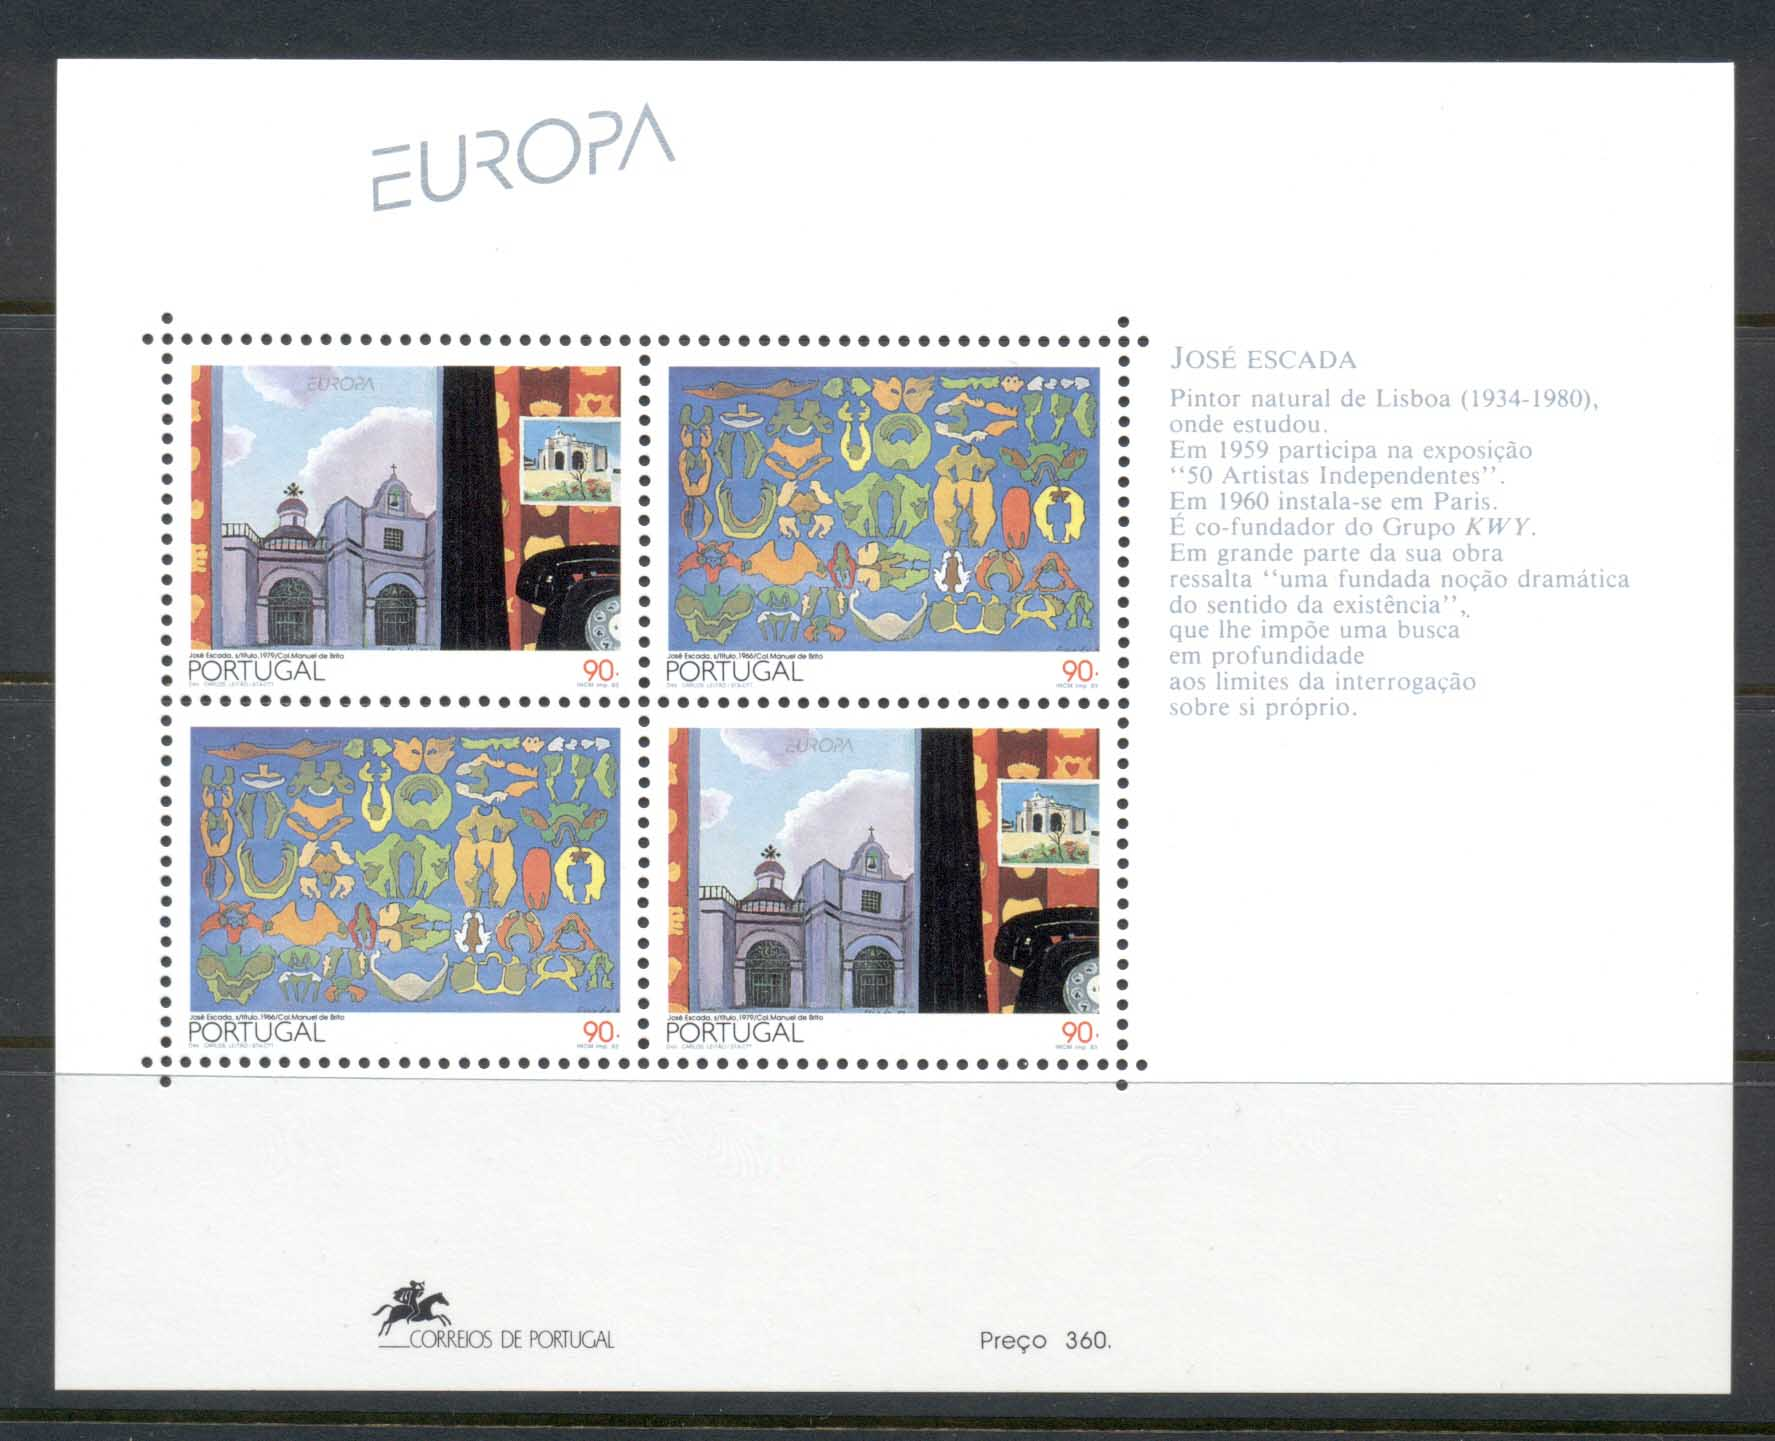 Portugal 1993 Europa MS MUH